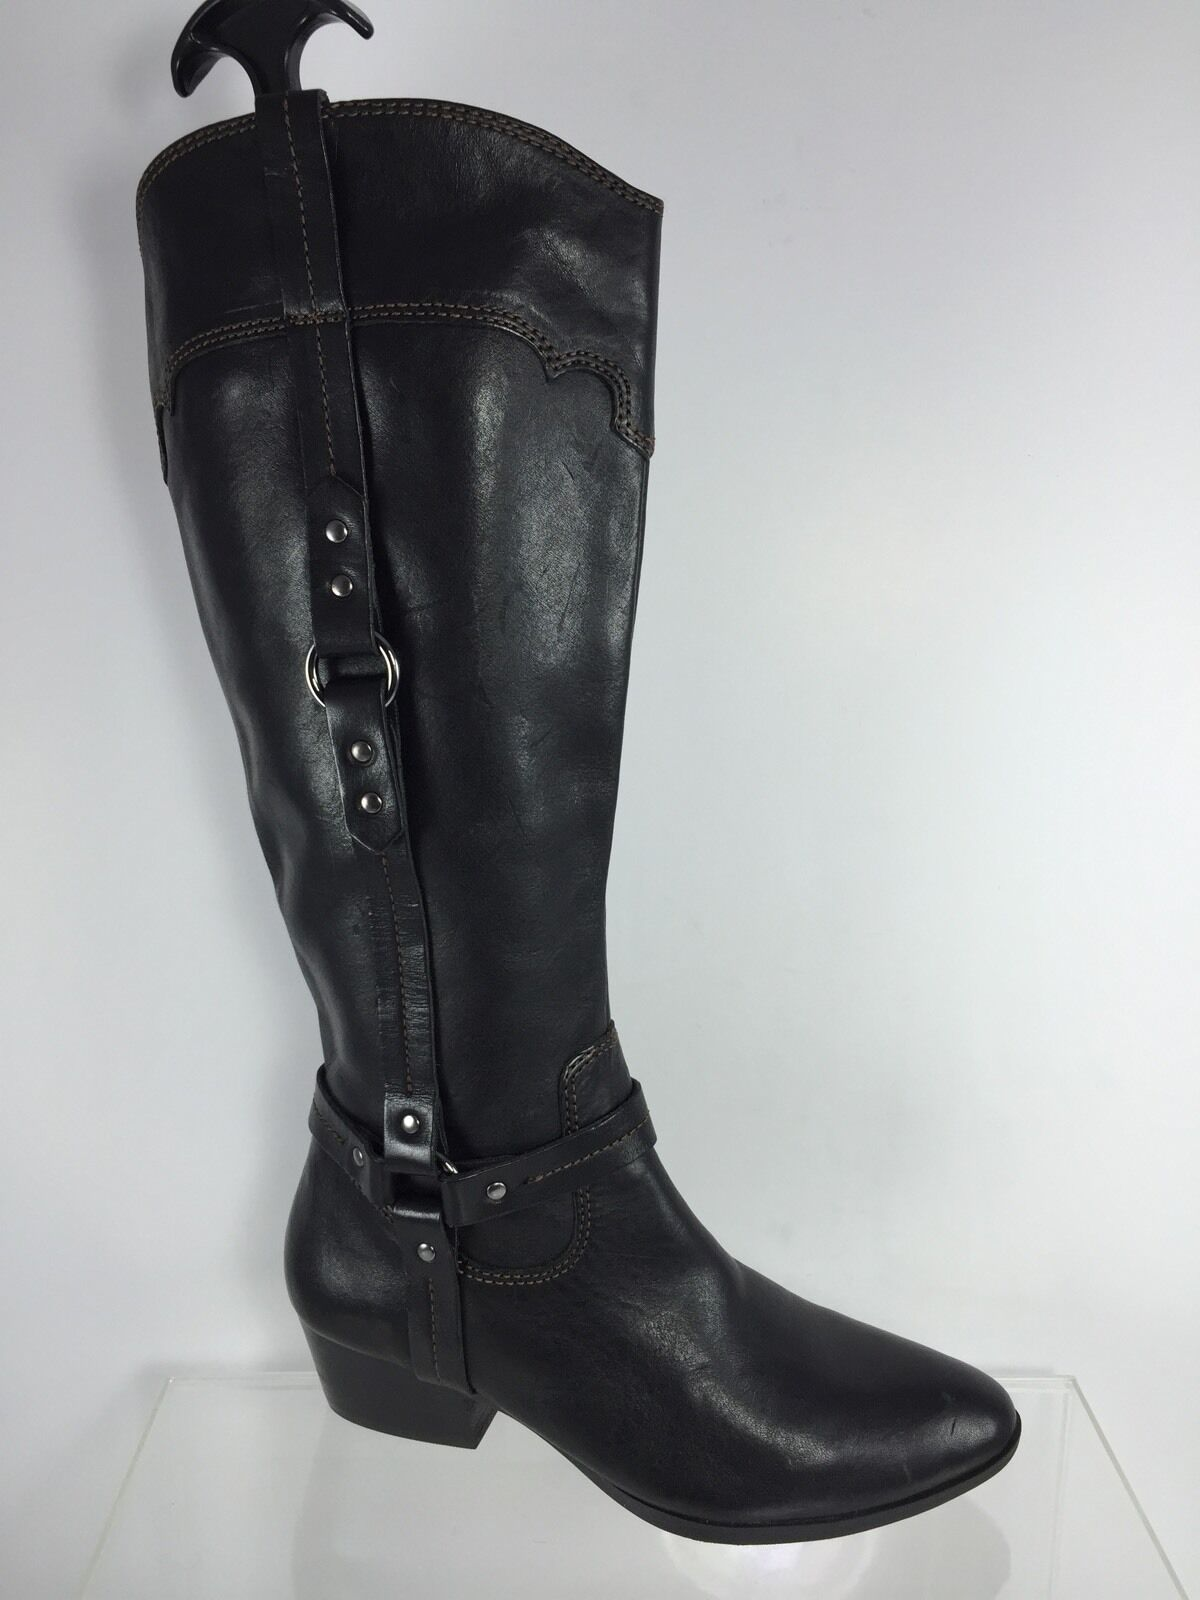 Sofft Womens Black Leather Cowboy Boots 6 M